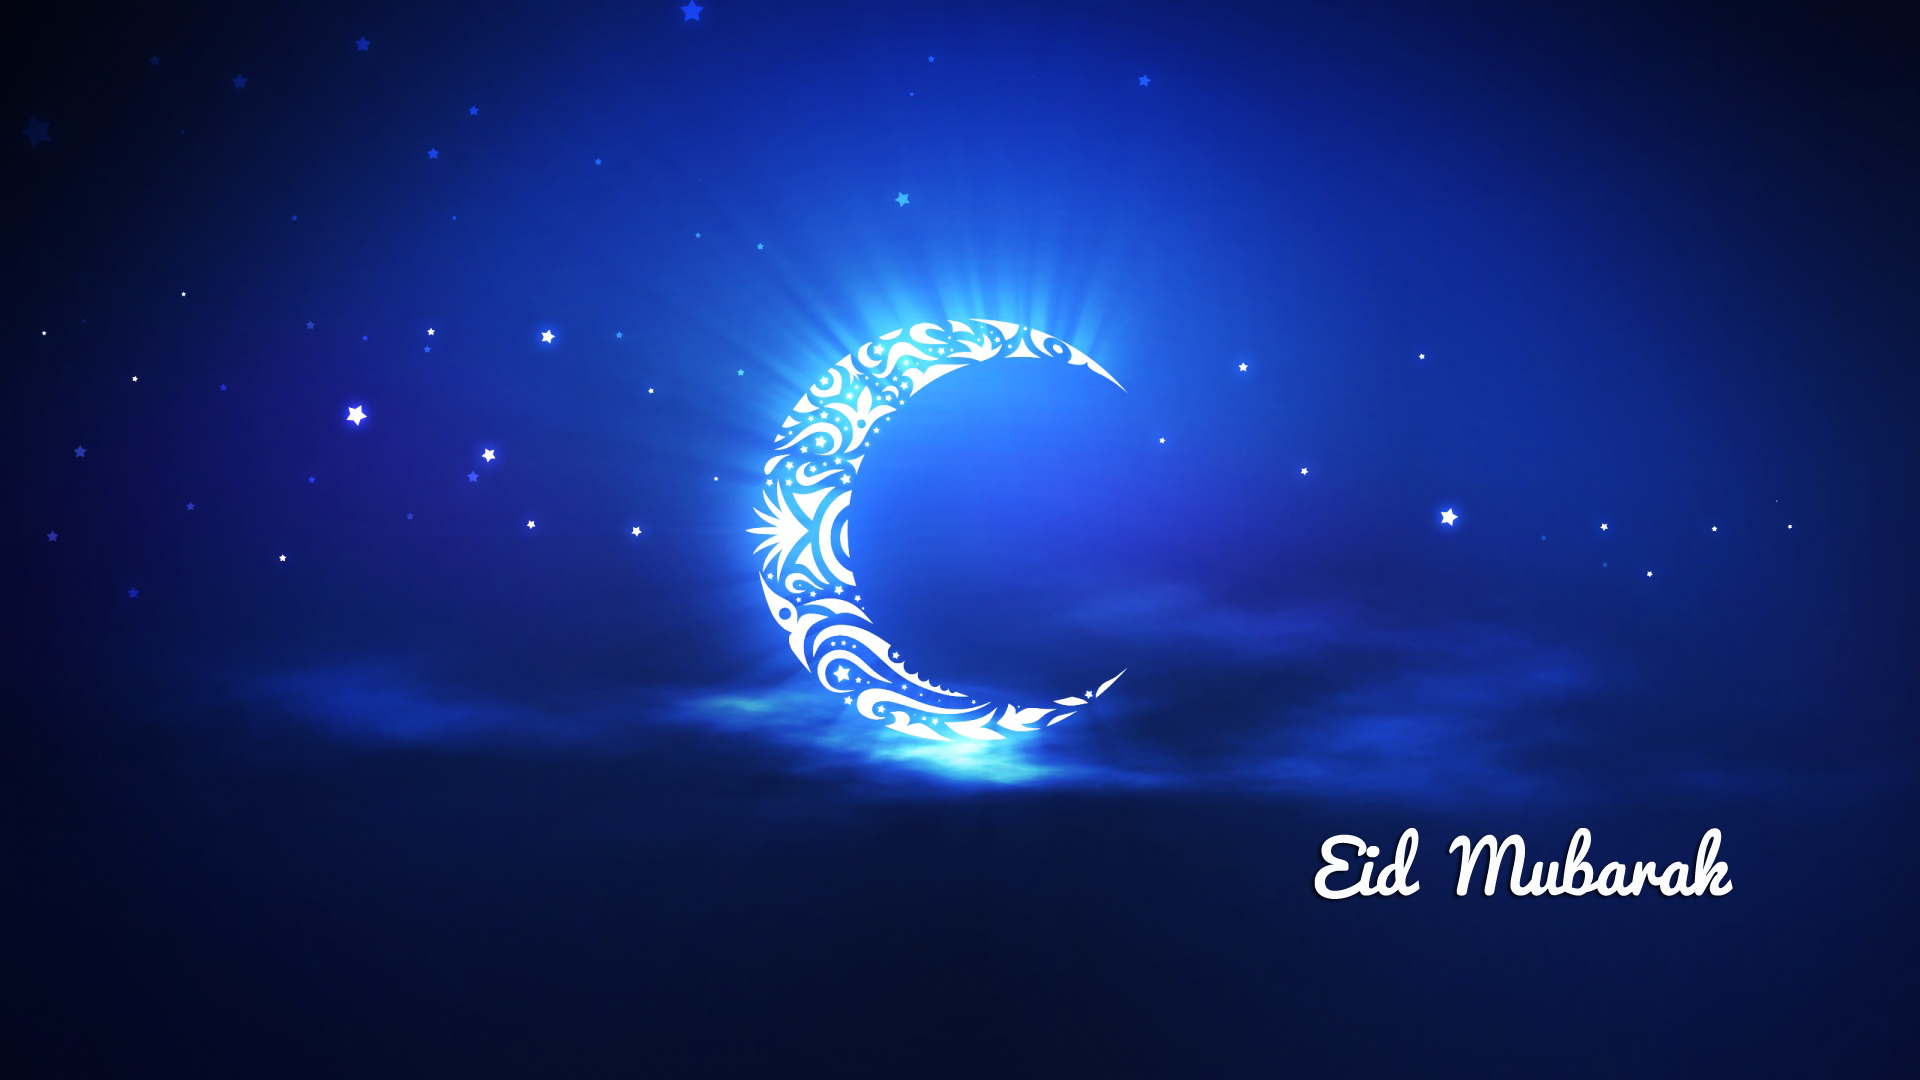 Eid Mubarak HD wallpapers pictures for lovers